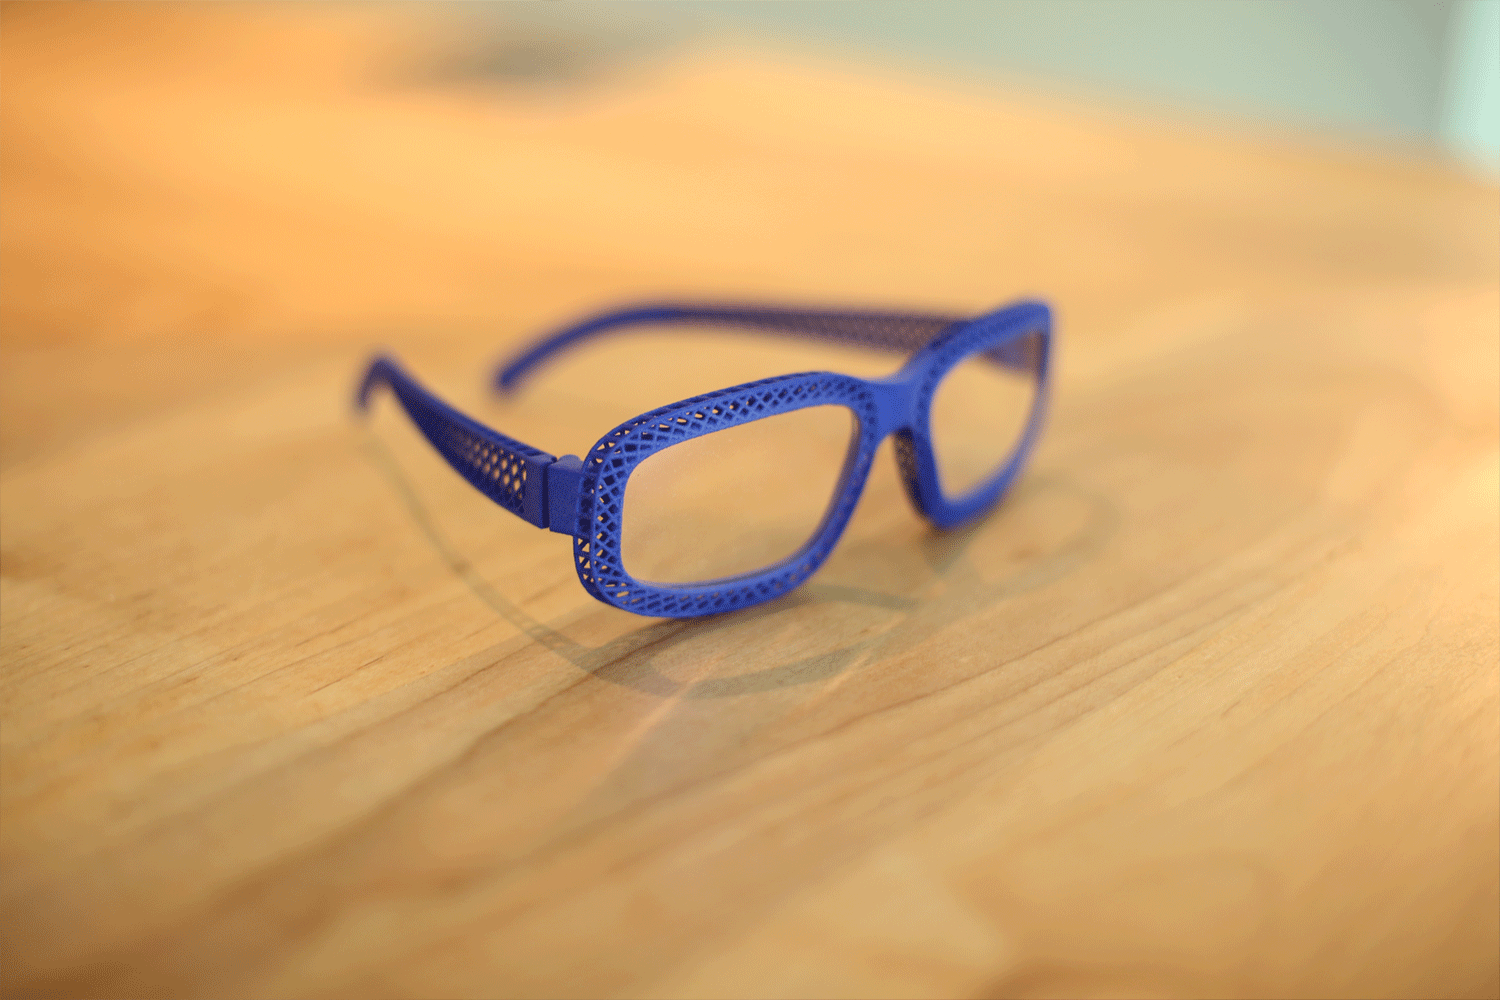 Project: Redesign Eyeglasses